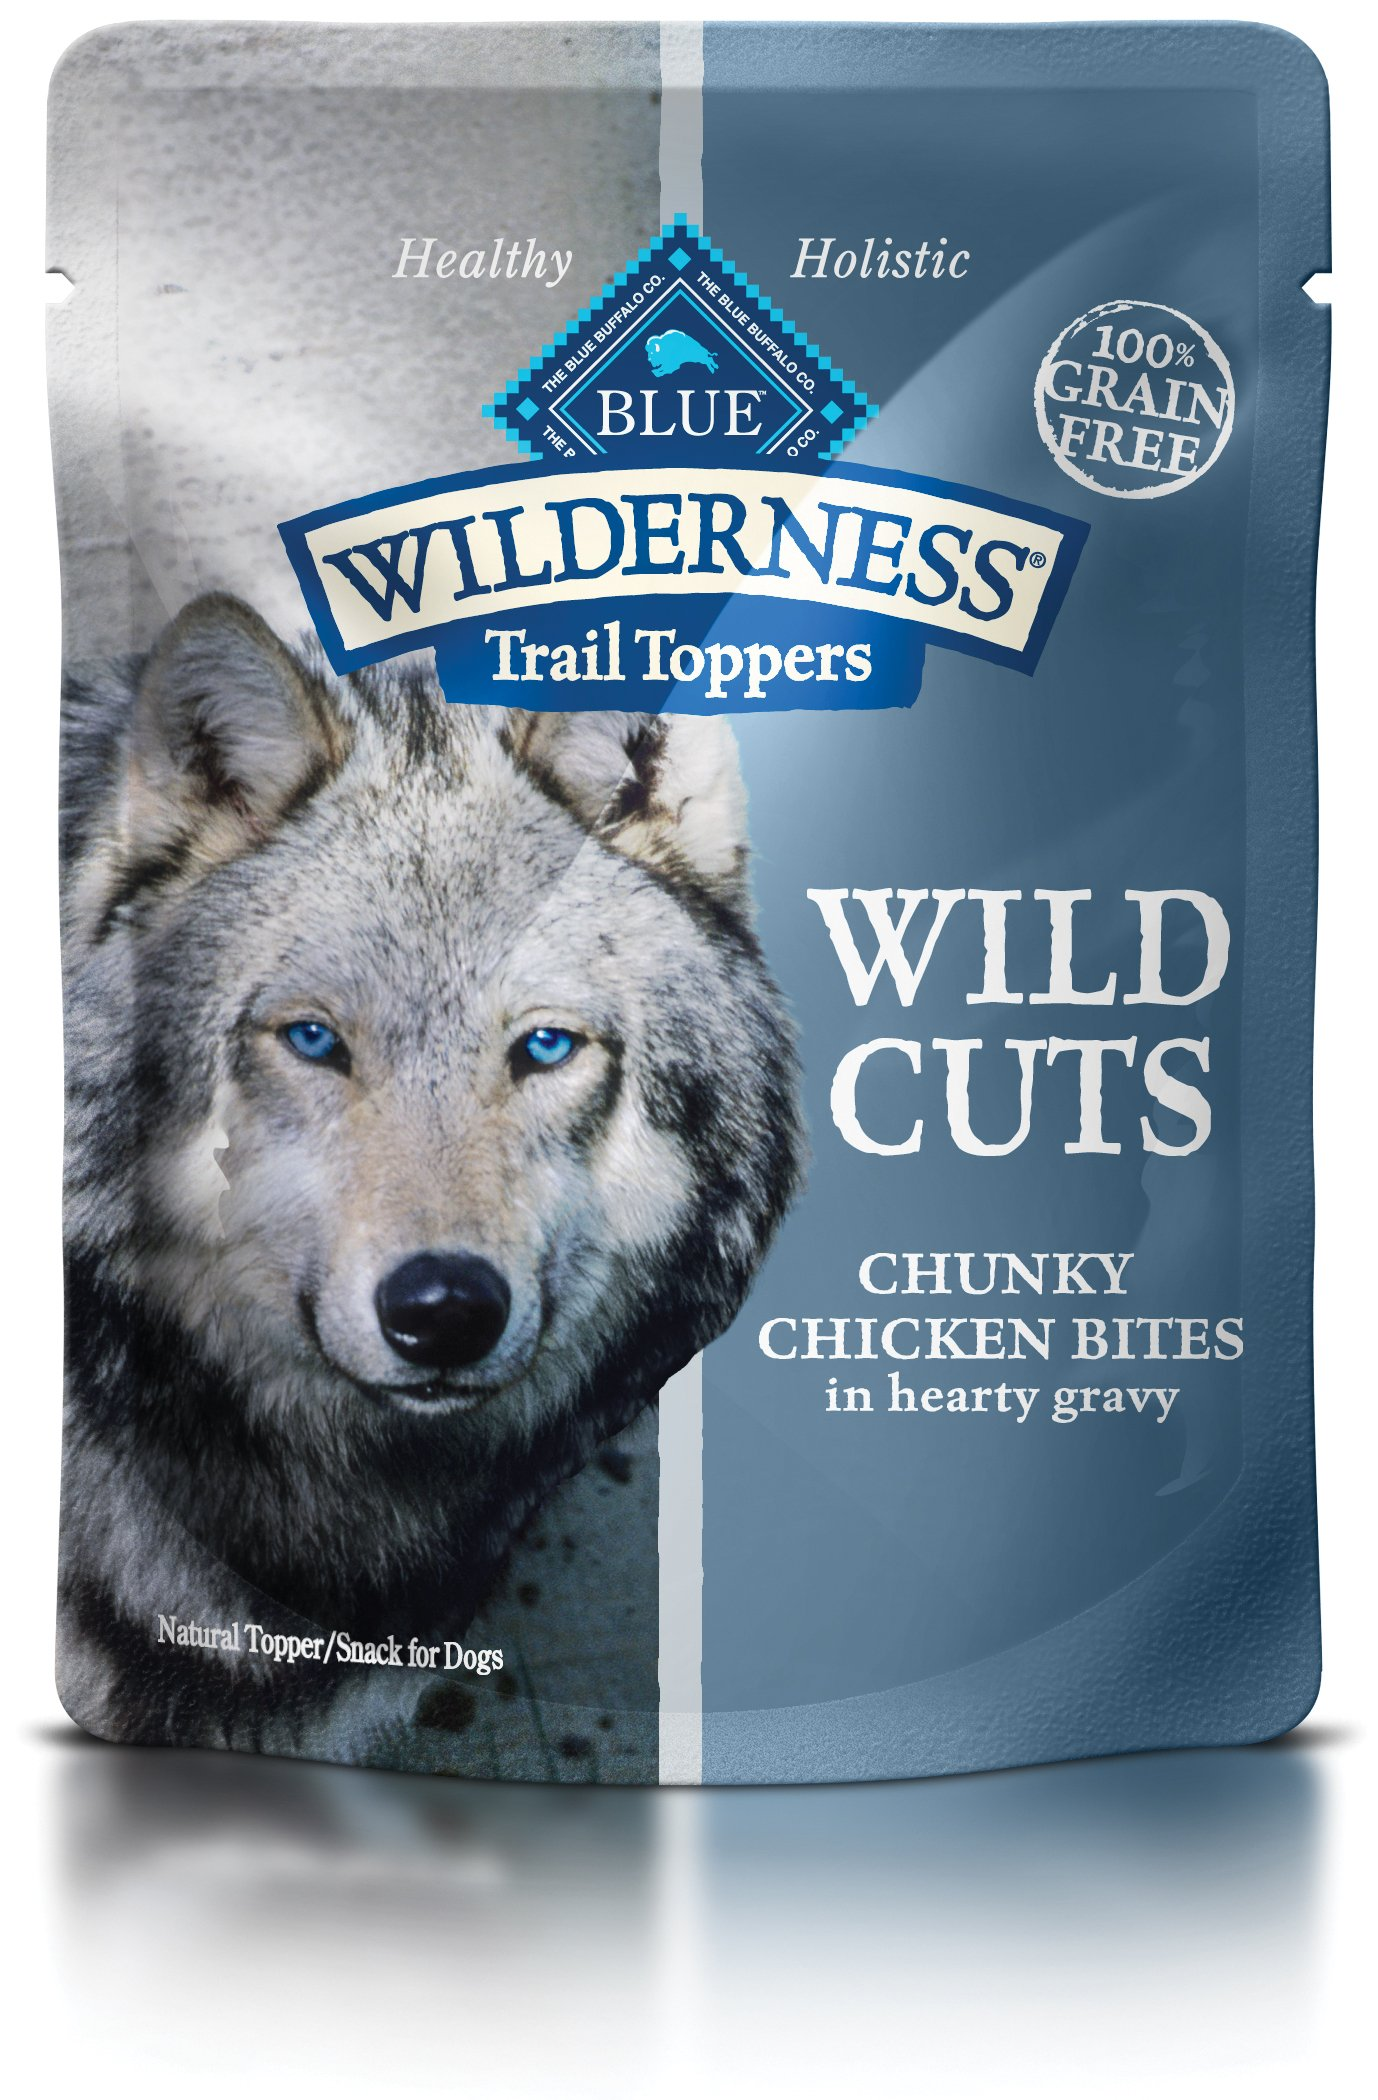 Is Blue Wilderness Dog Food Complete And Balanced